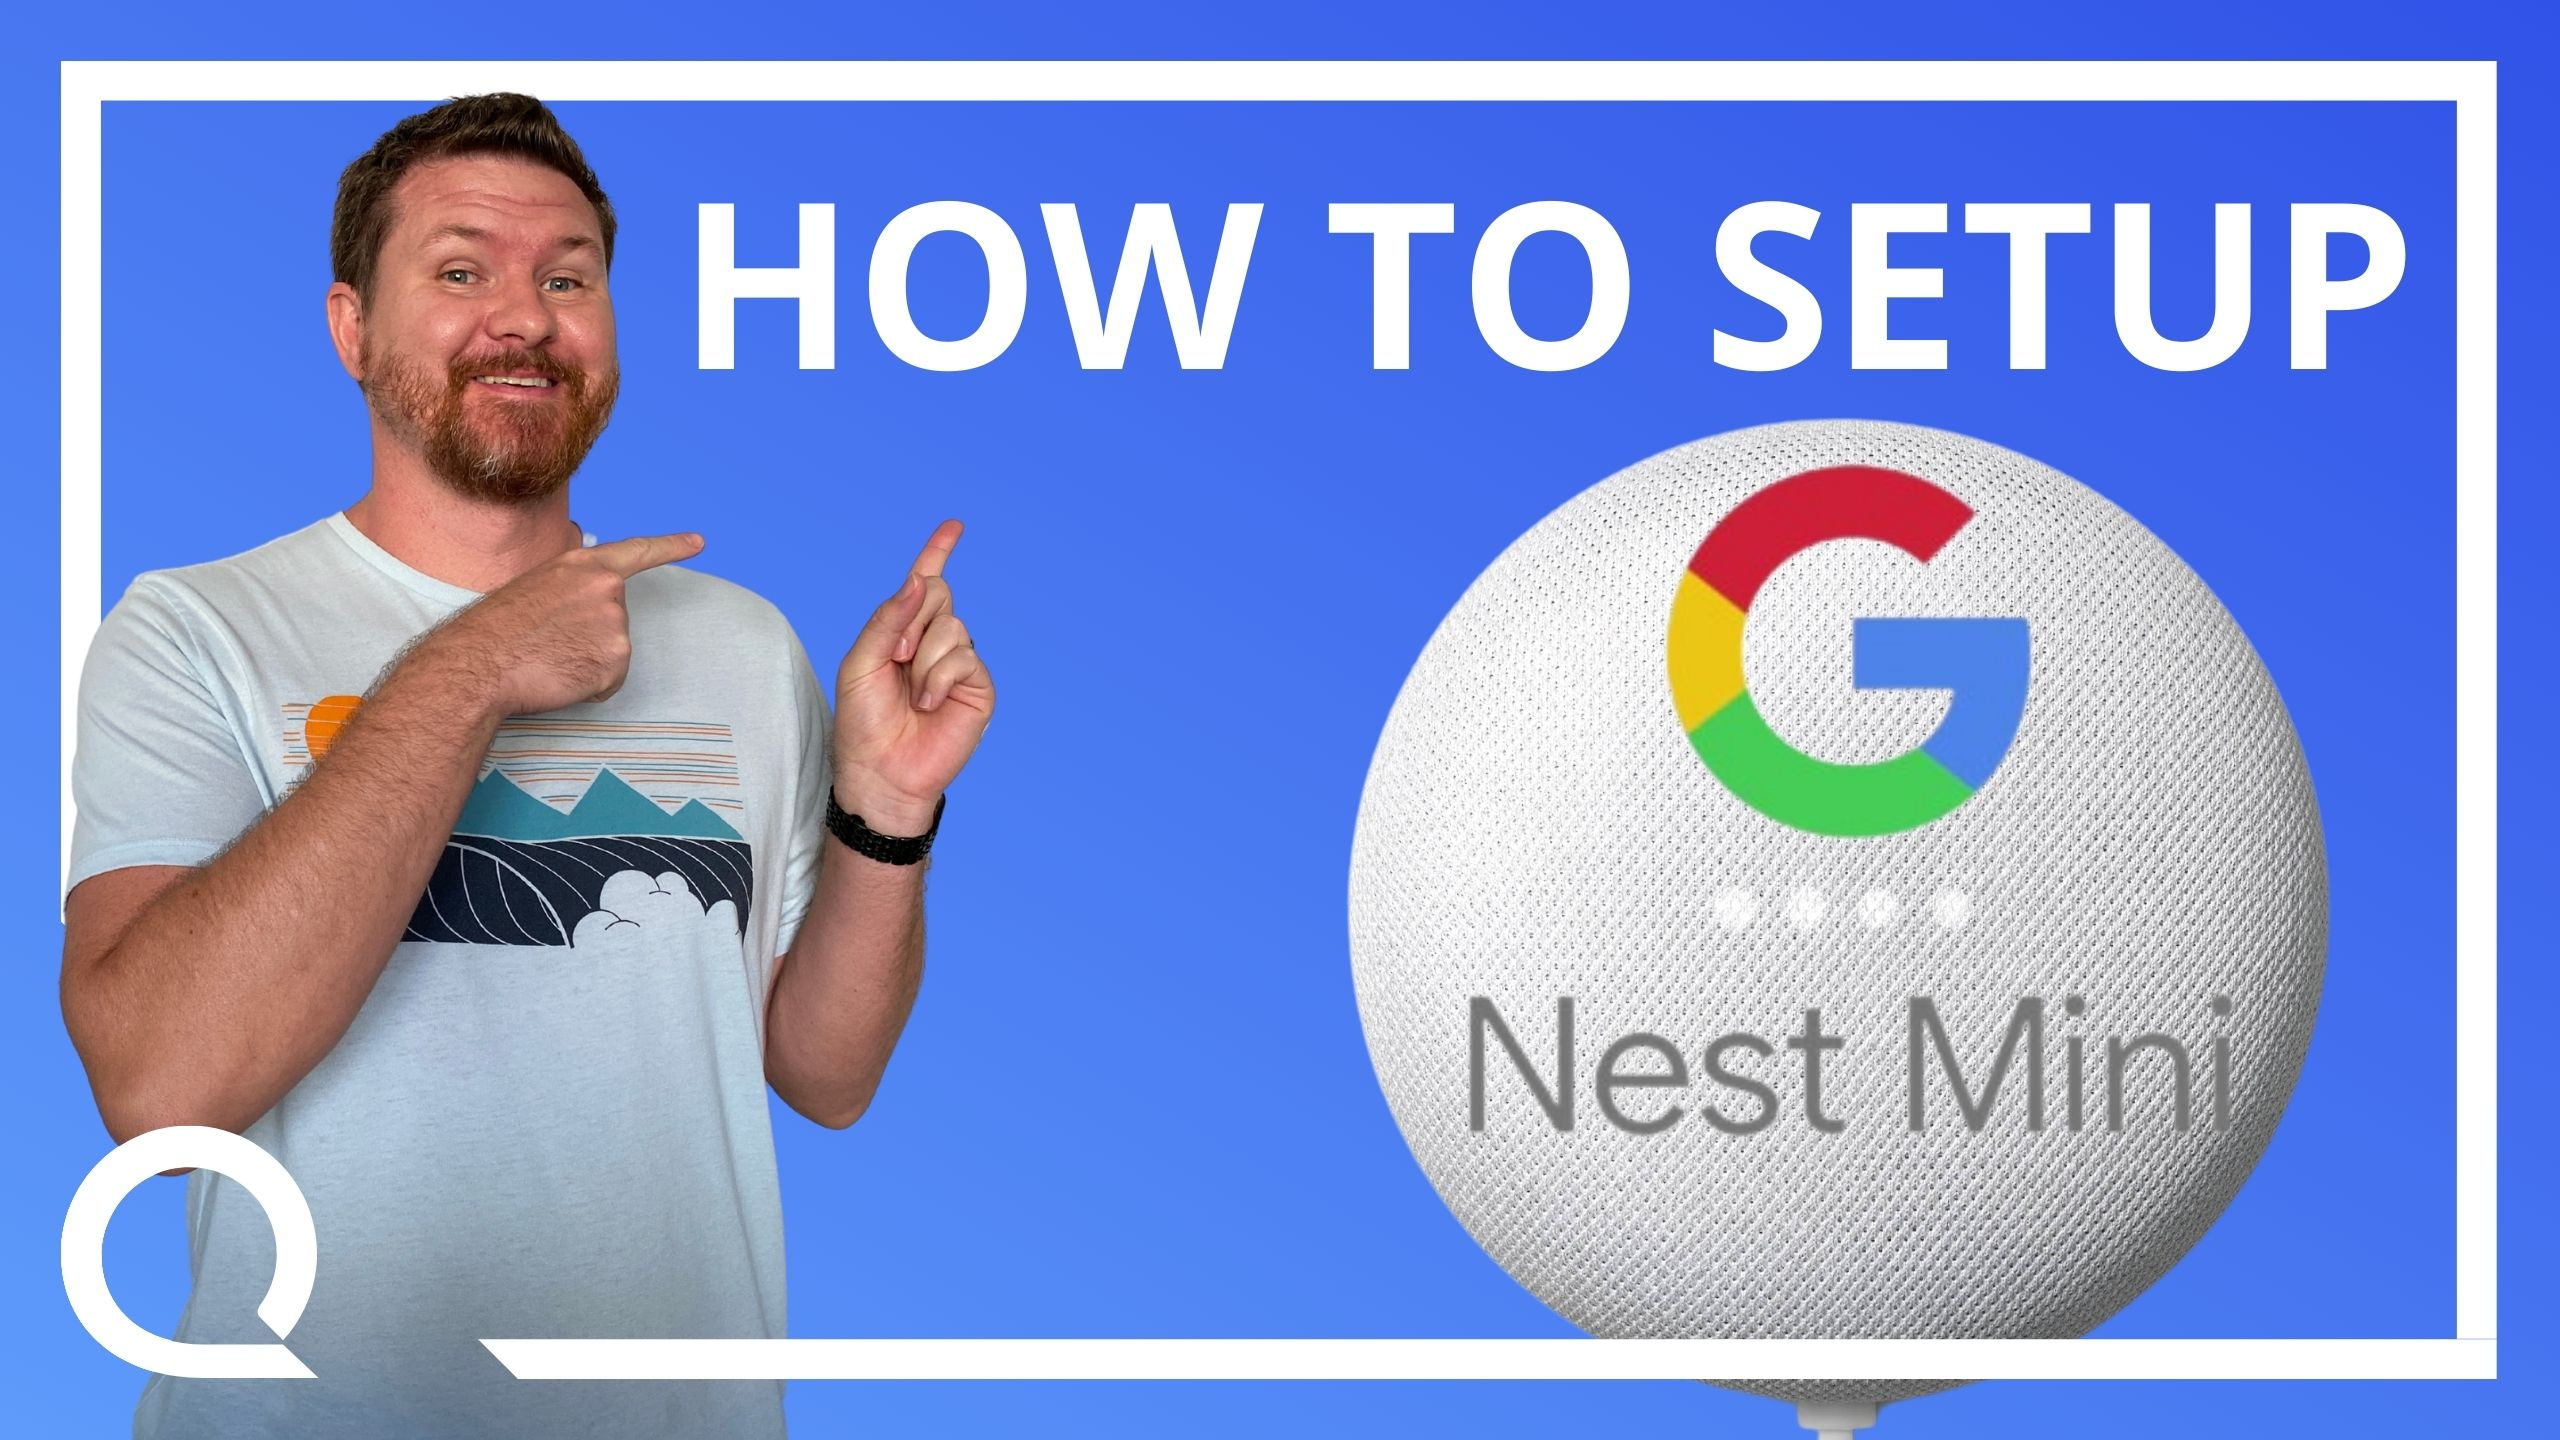 """Man pointing at text """"how to set up google nest mini"""" with image of nest mini on blue background"""